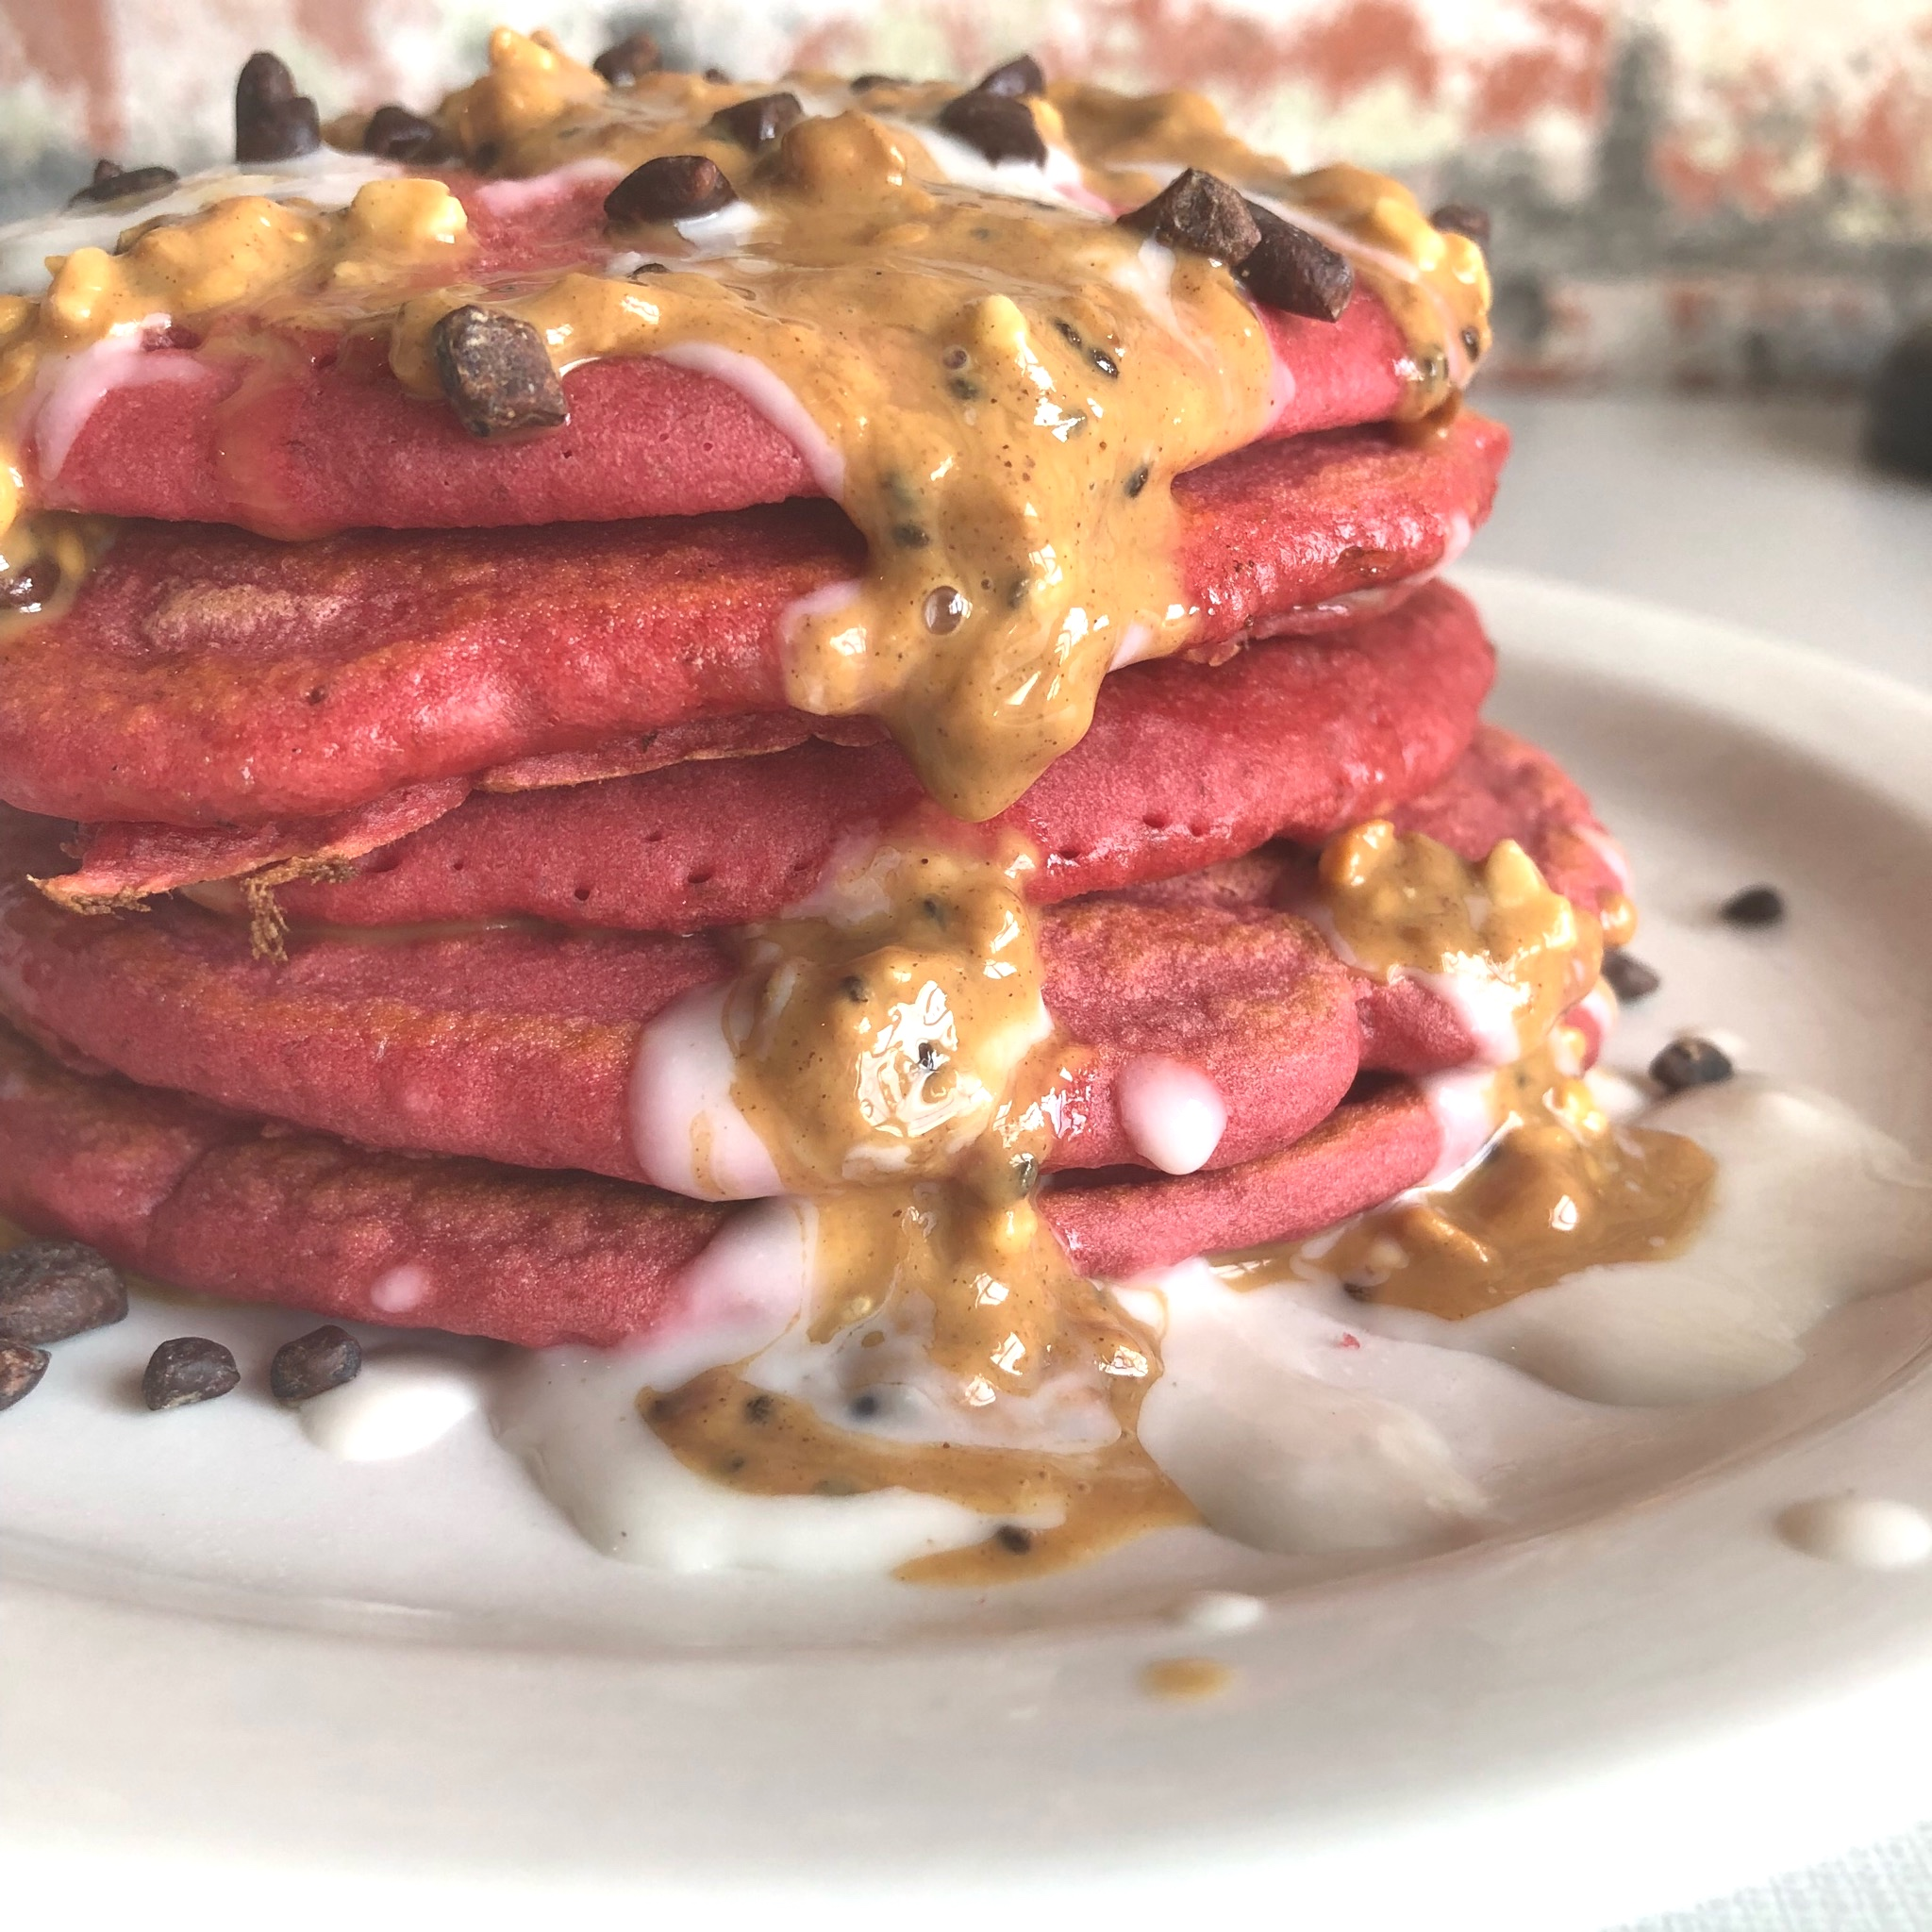 PEANUT BUTTER & BEET PANCAKES - GLUTEN-FREE, DAIRY-FREE, SUPERFOODS